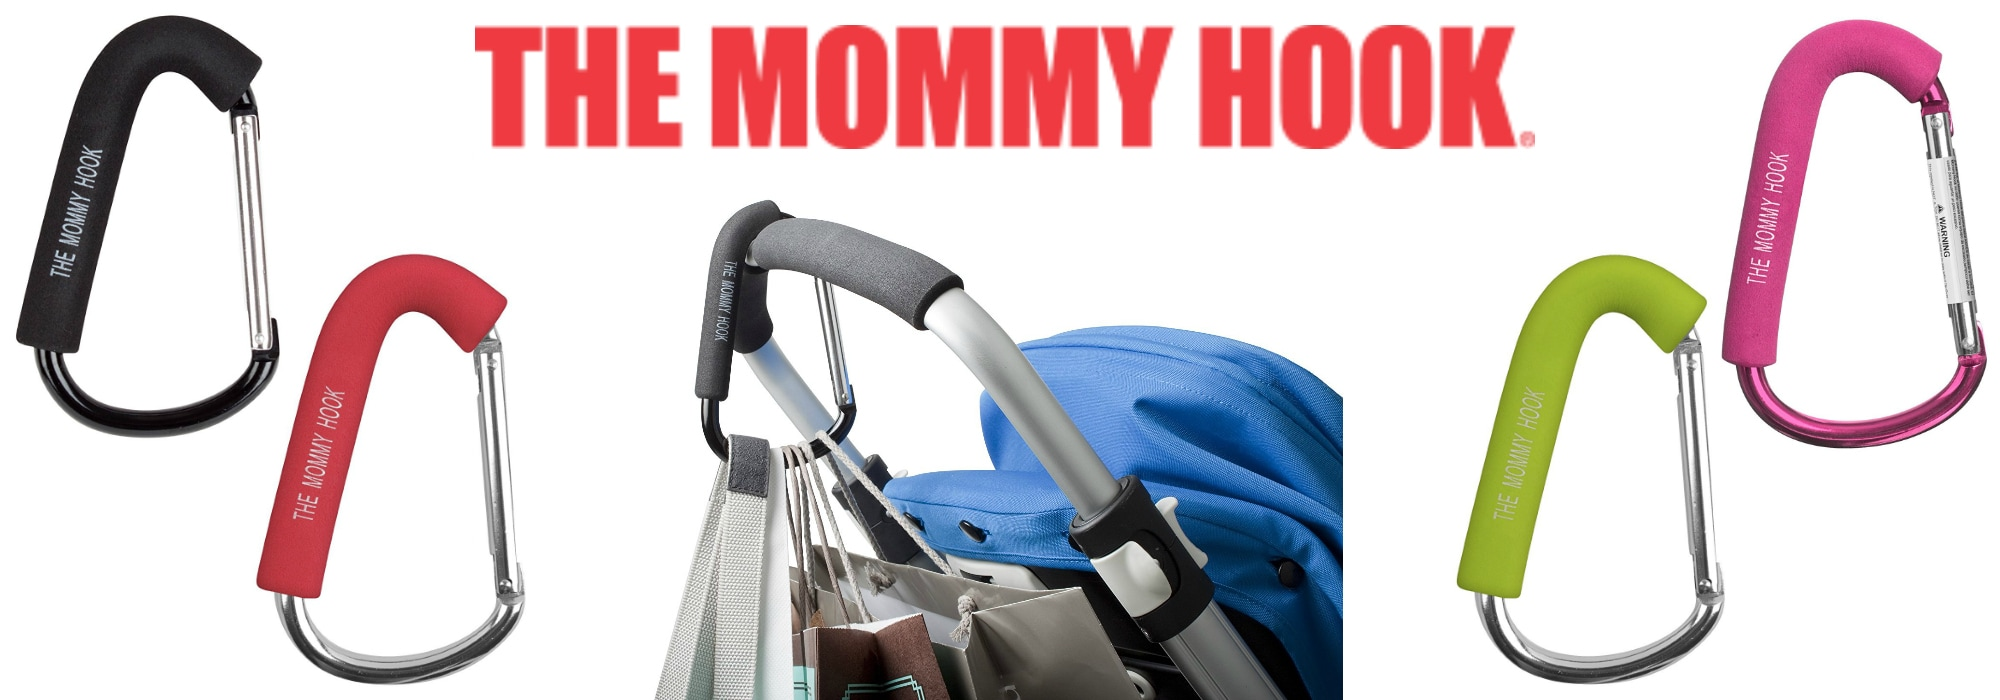 Win The Mommy Hook in US Japan Fam's $500 value